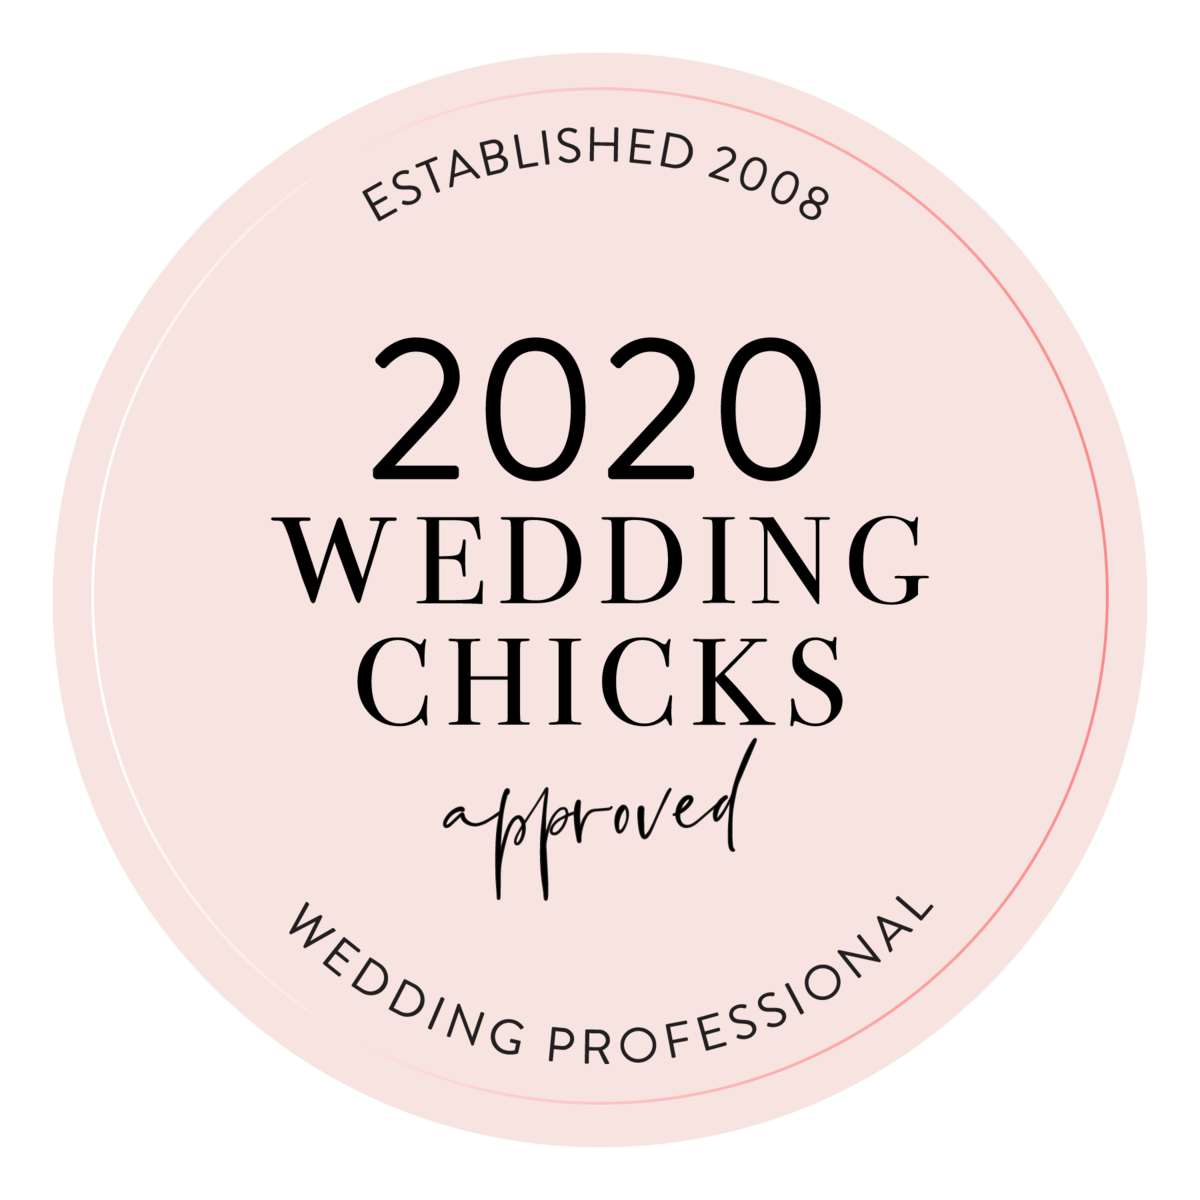 Wedding Chicks Wedding Professioal